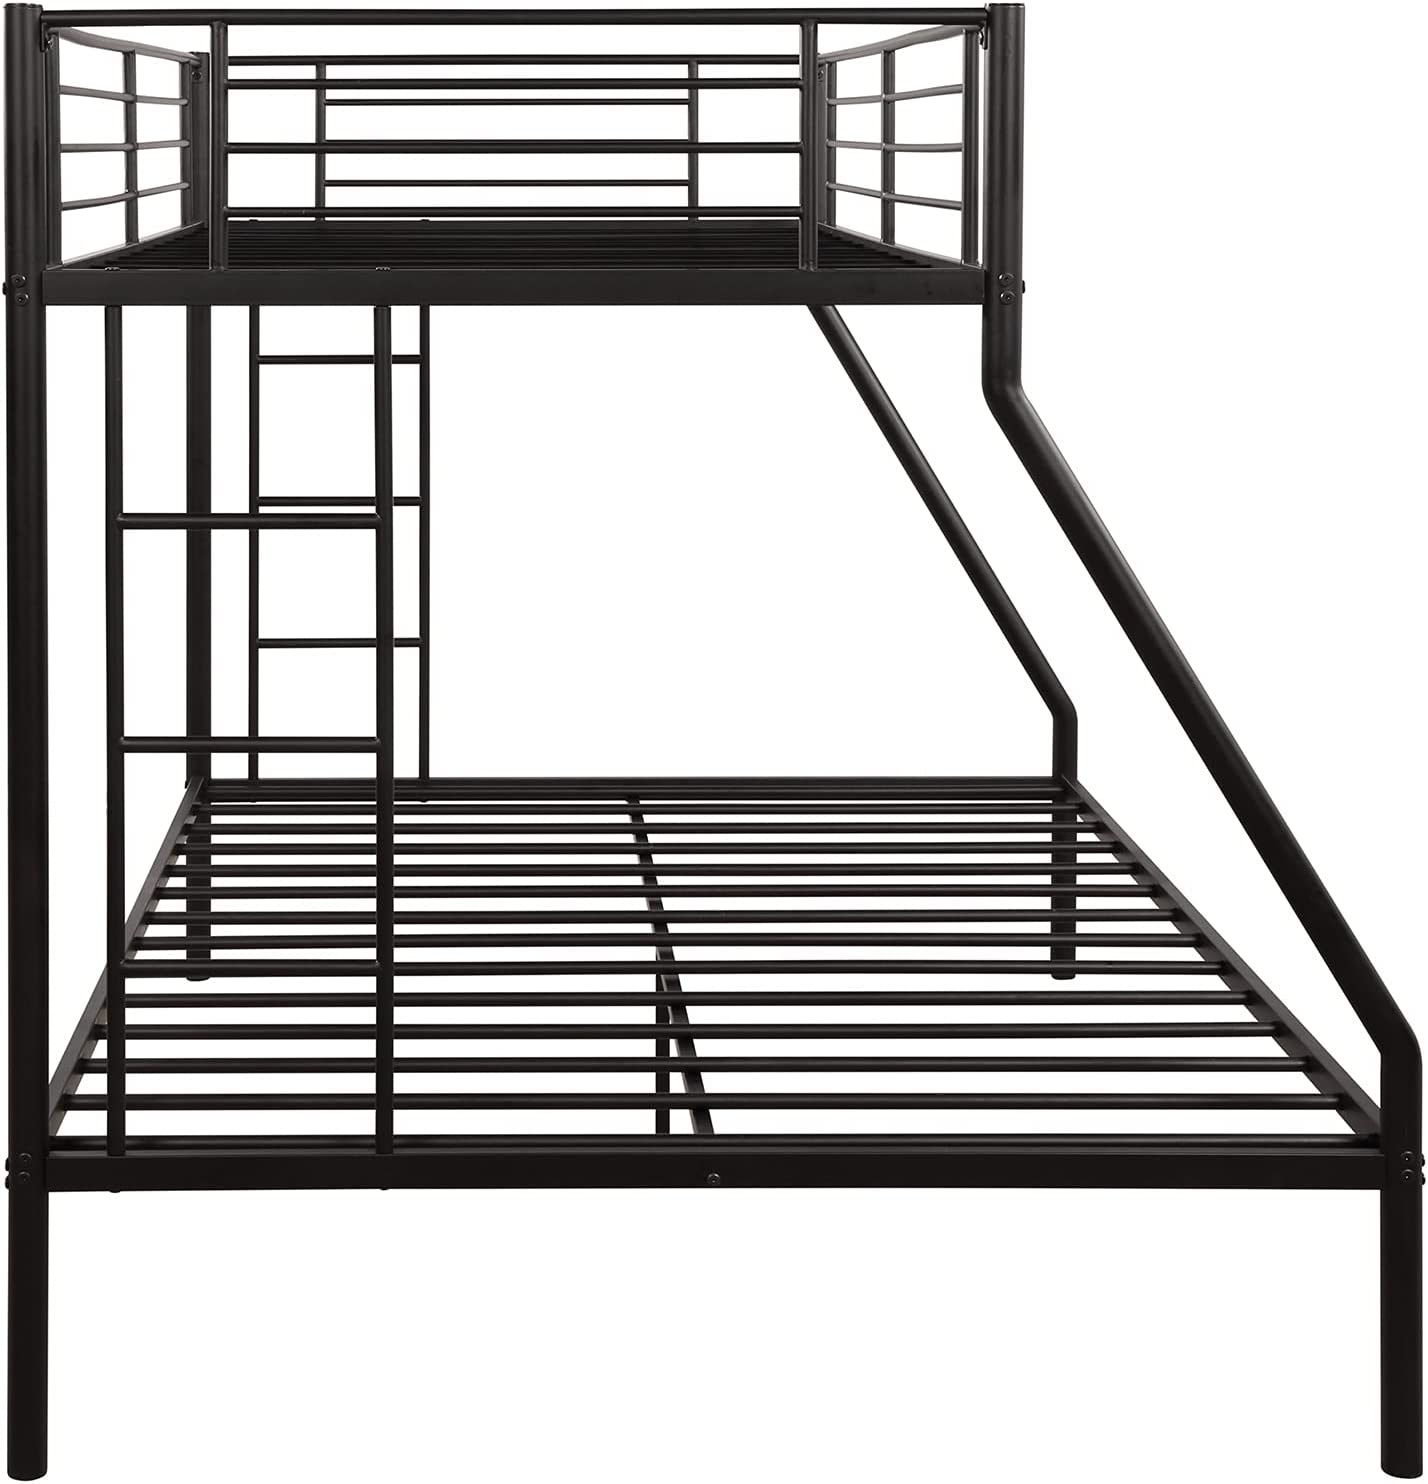 Buy Metal Bunk Beds Twin Over Full Bunk Bed For Kids Thicken Metal Bunk Bed Frame With Ladder And Guard Rail For Children Boys Girls And Adults Black Online In Indonesia B08xqh3rd4